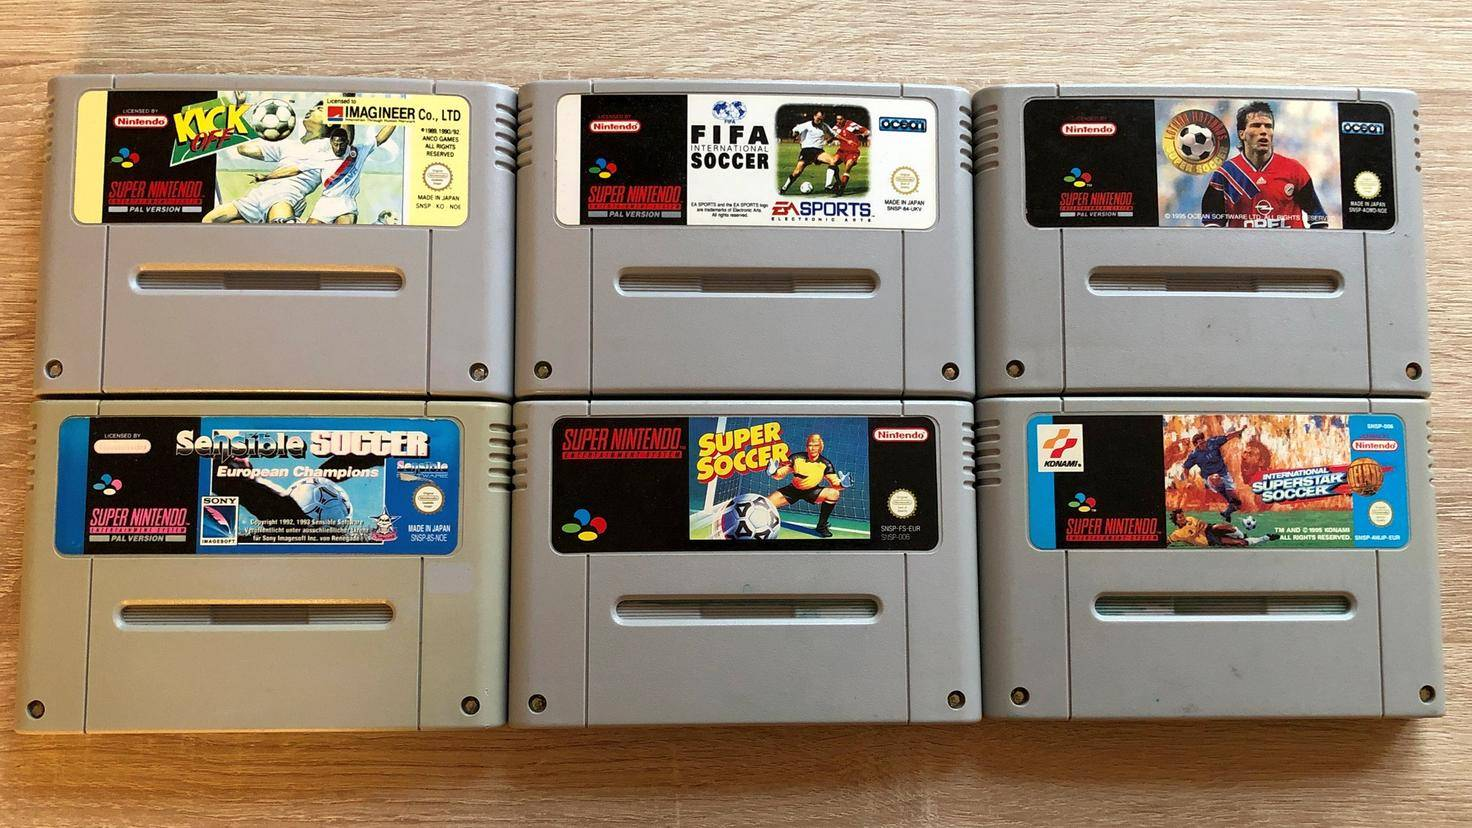 Super Nintendo Football Video Game Cartridges: Kick Off, FIFA, Lothar Matthaus Super Soccer, Sensible Soccer, Super Soccer, International Superstar Soccer Deluxe.